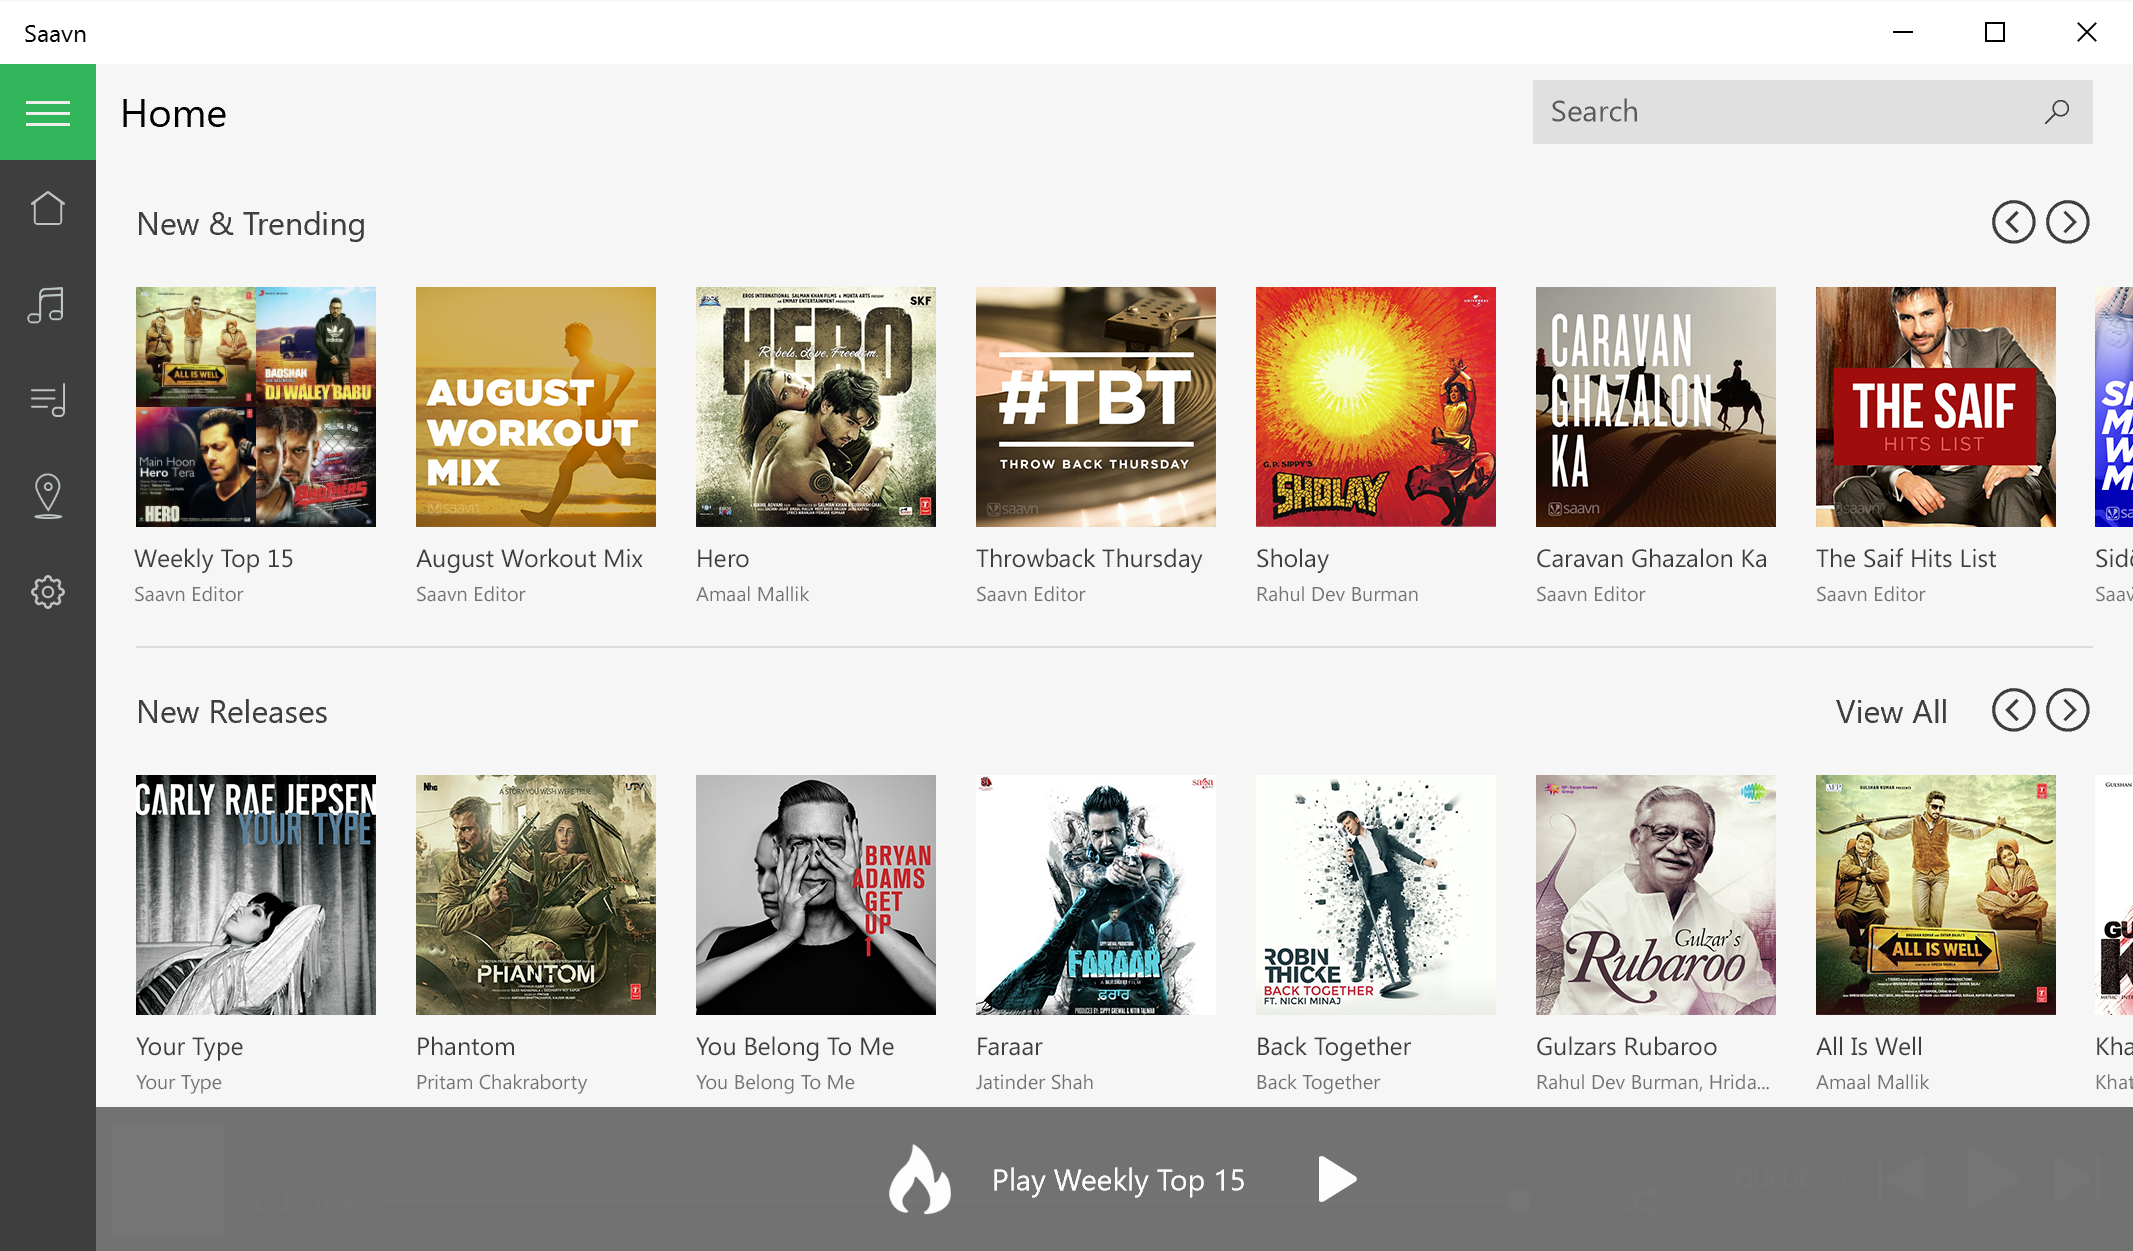 Saavn launches its official Windows 10 app 5